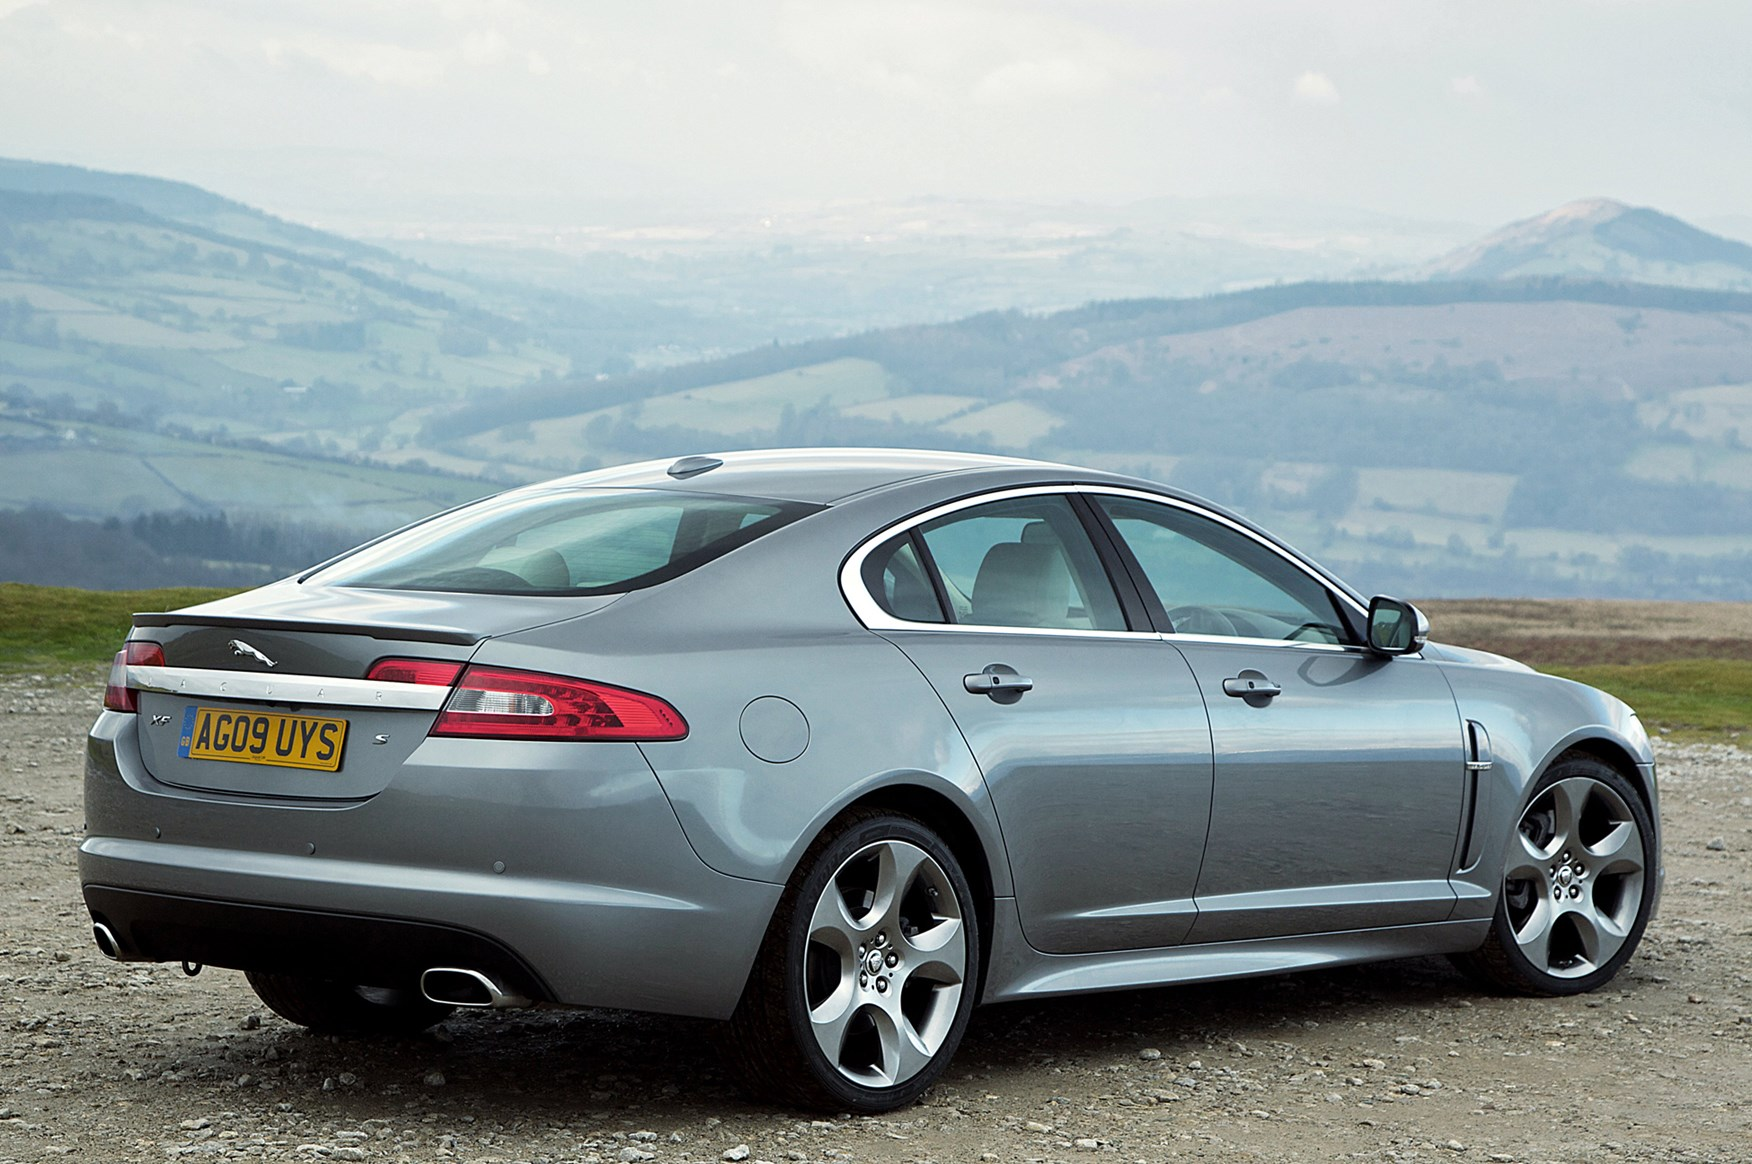 xf supercharged jaguar cars img about the truth review sport